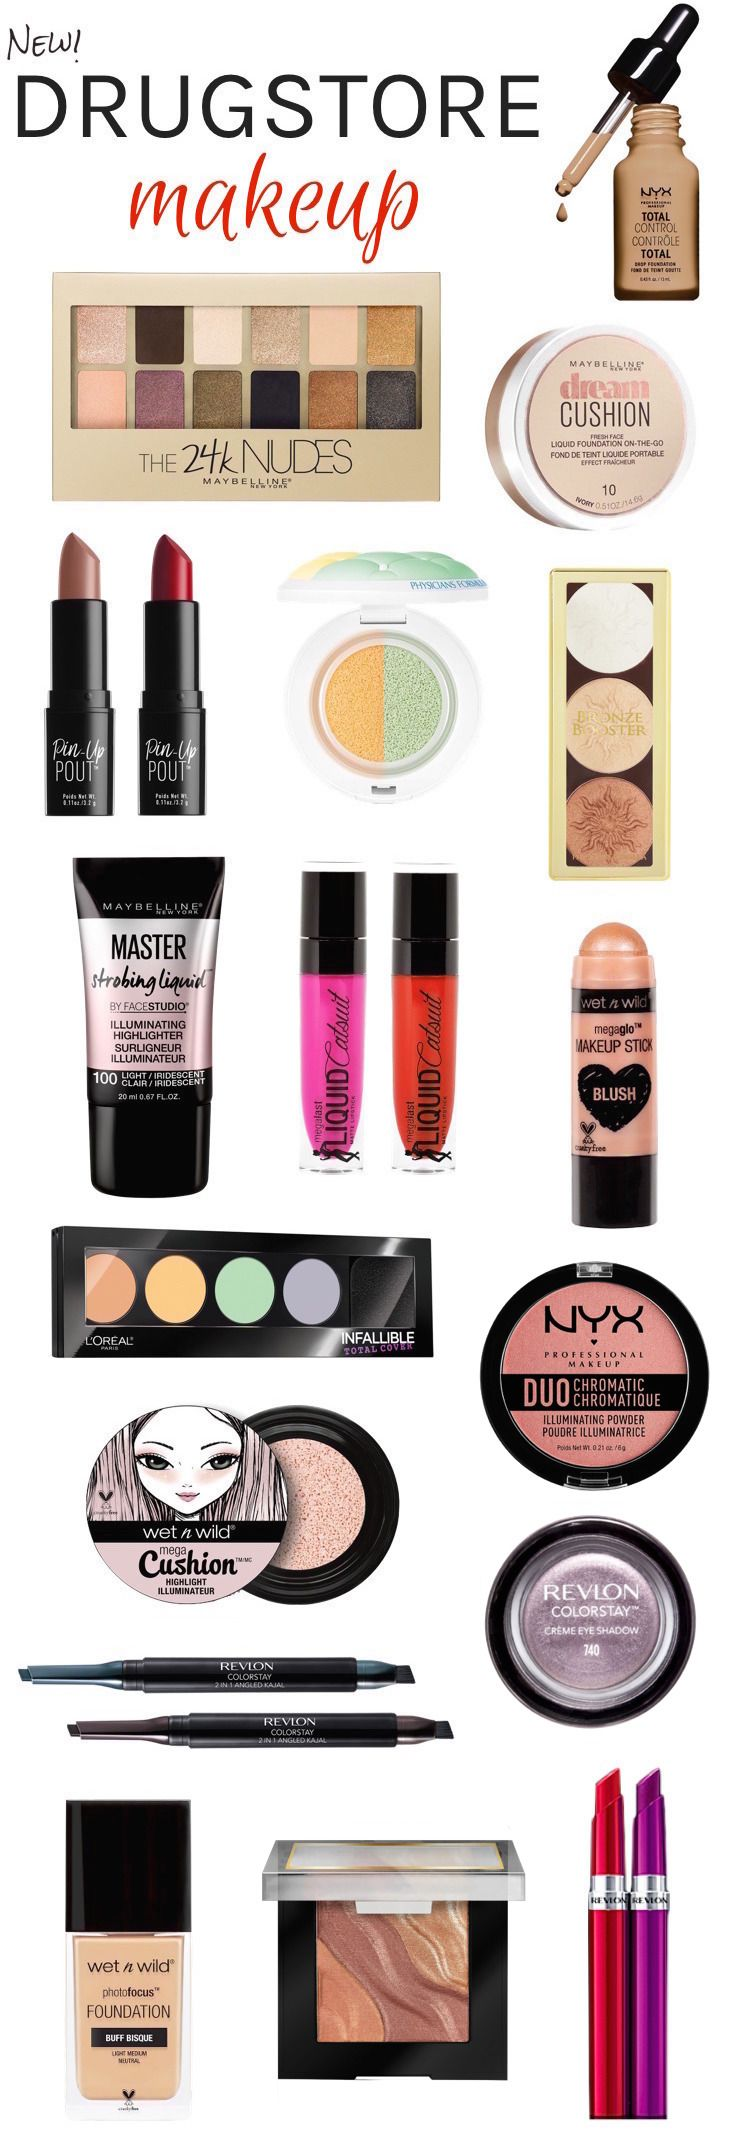 Drugstore Makeup Dupes: 17 New Drugstore Beauty Buys You Need To Try